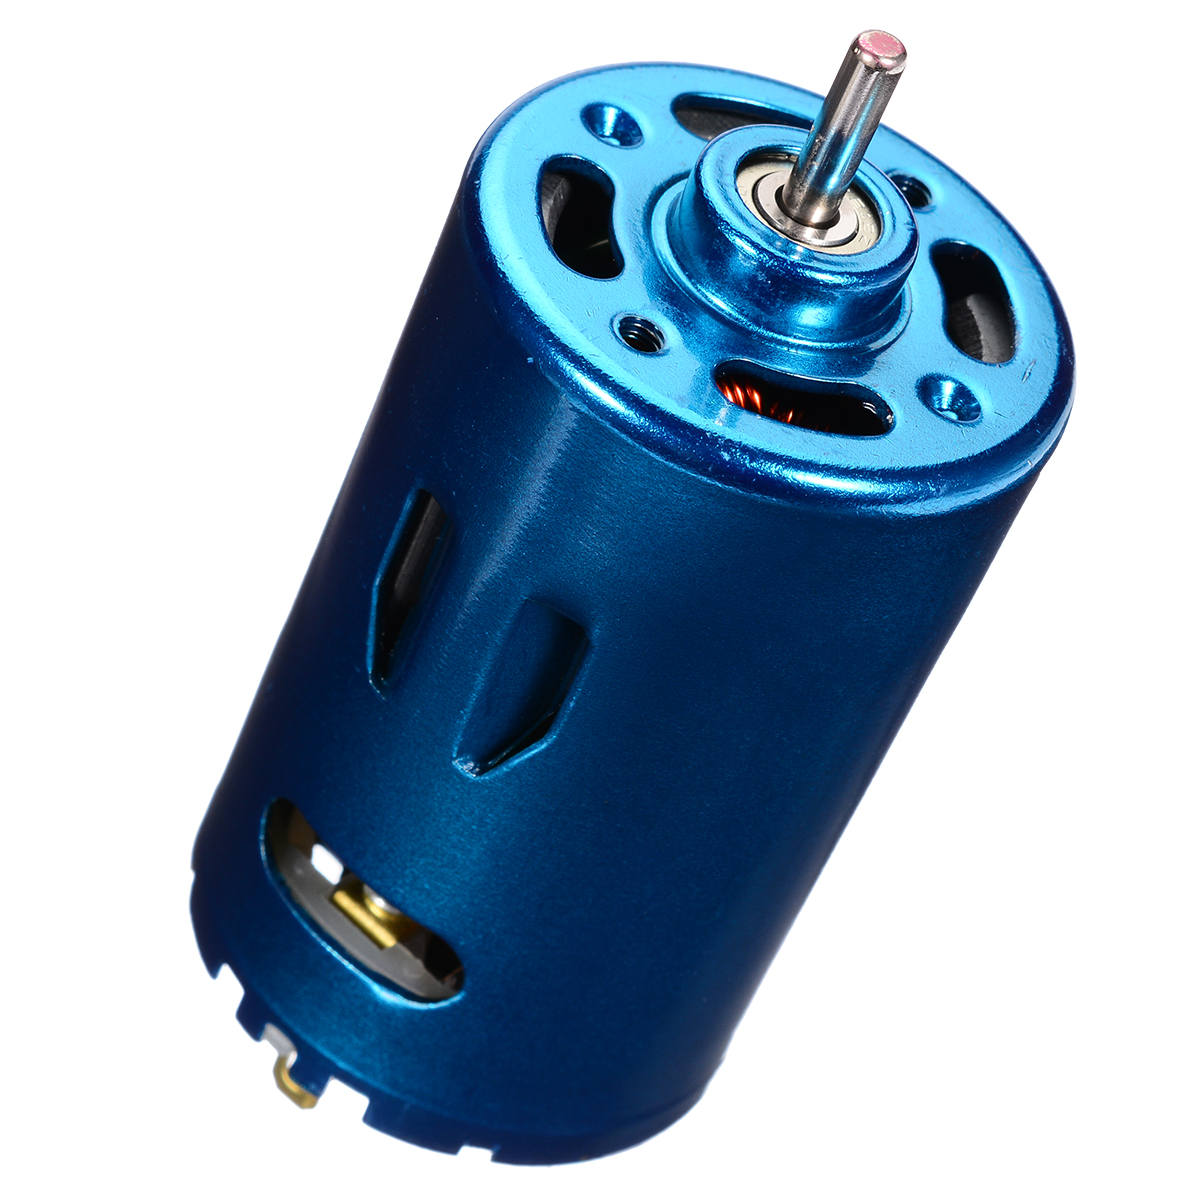 High Torque RS-550 Motor 30000RPM DC 12V-24V with High Accuracy For RC Car Boat Model High Speed DC Motor